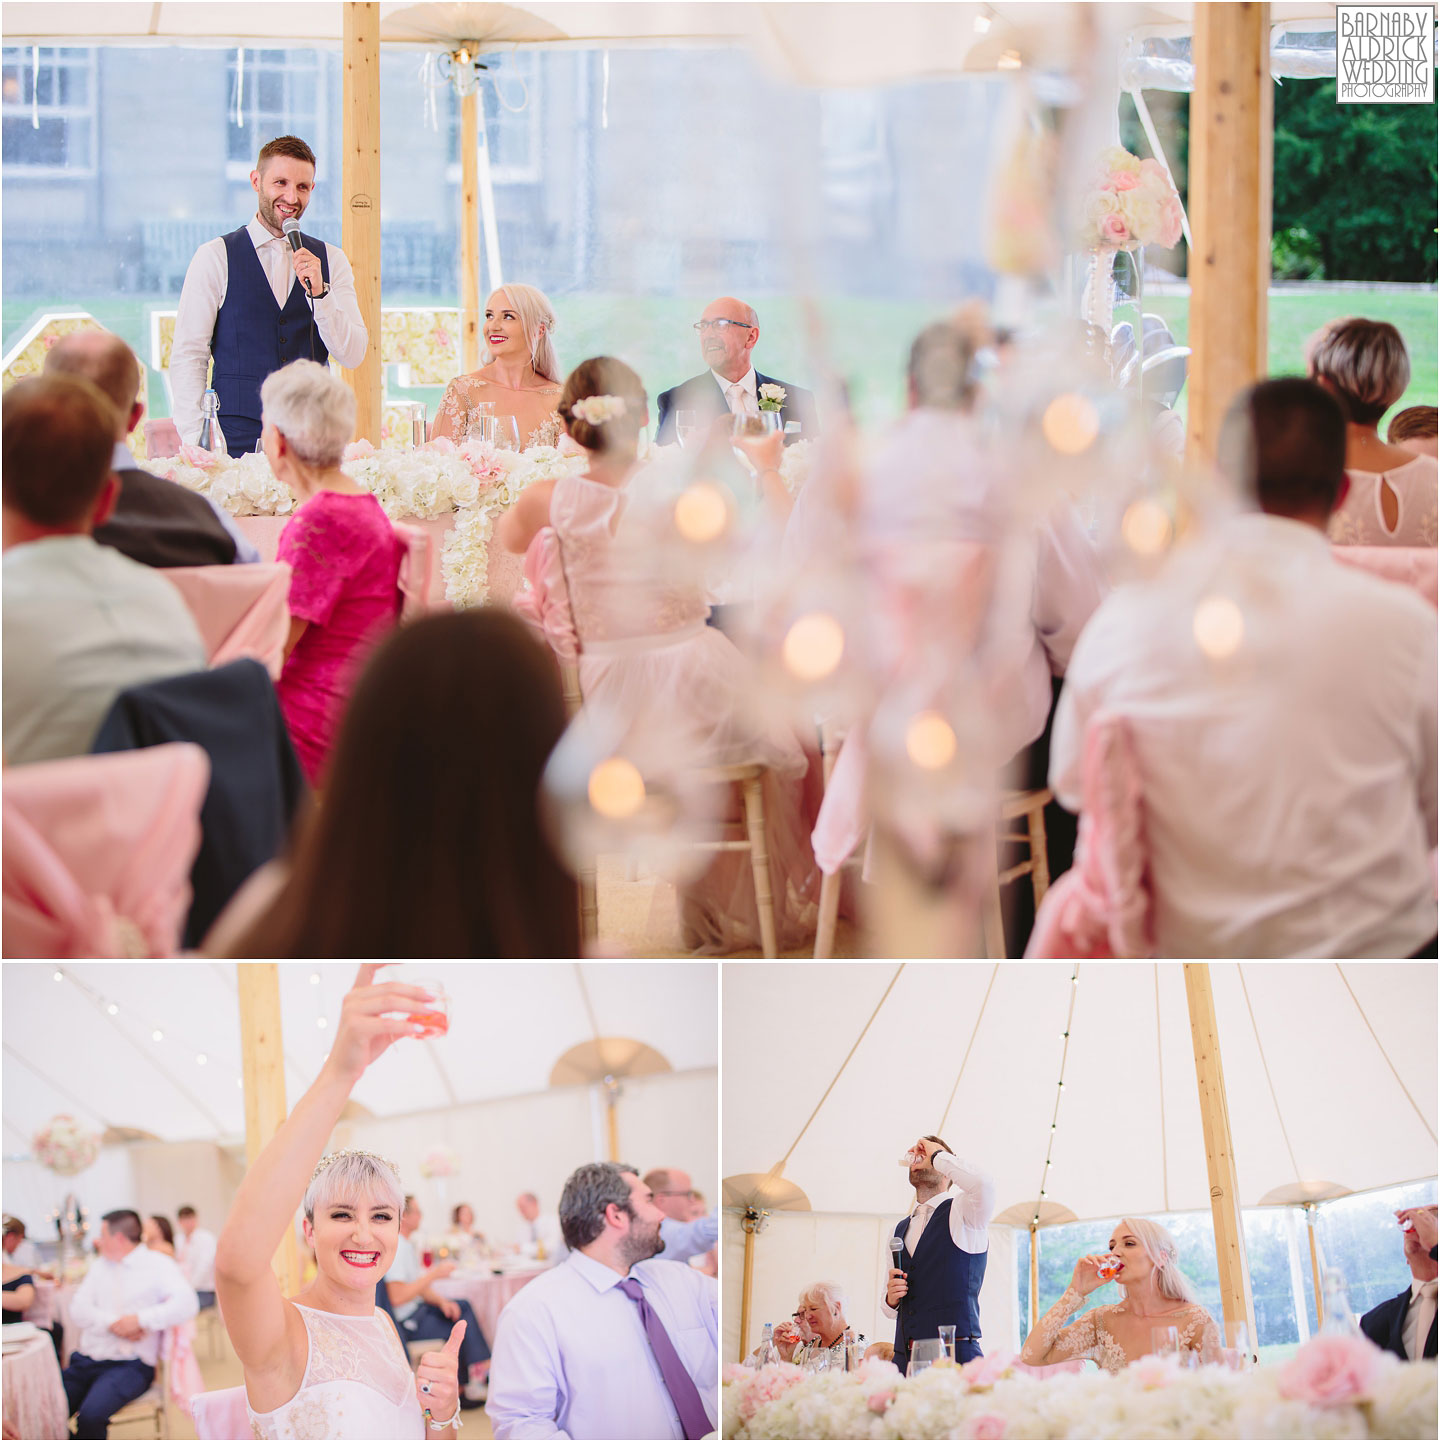 Papakata Sperry Tent Outdoor wedding marquee